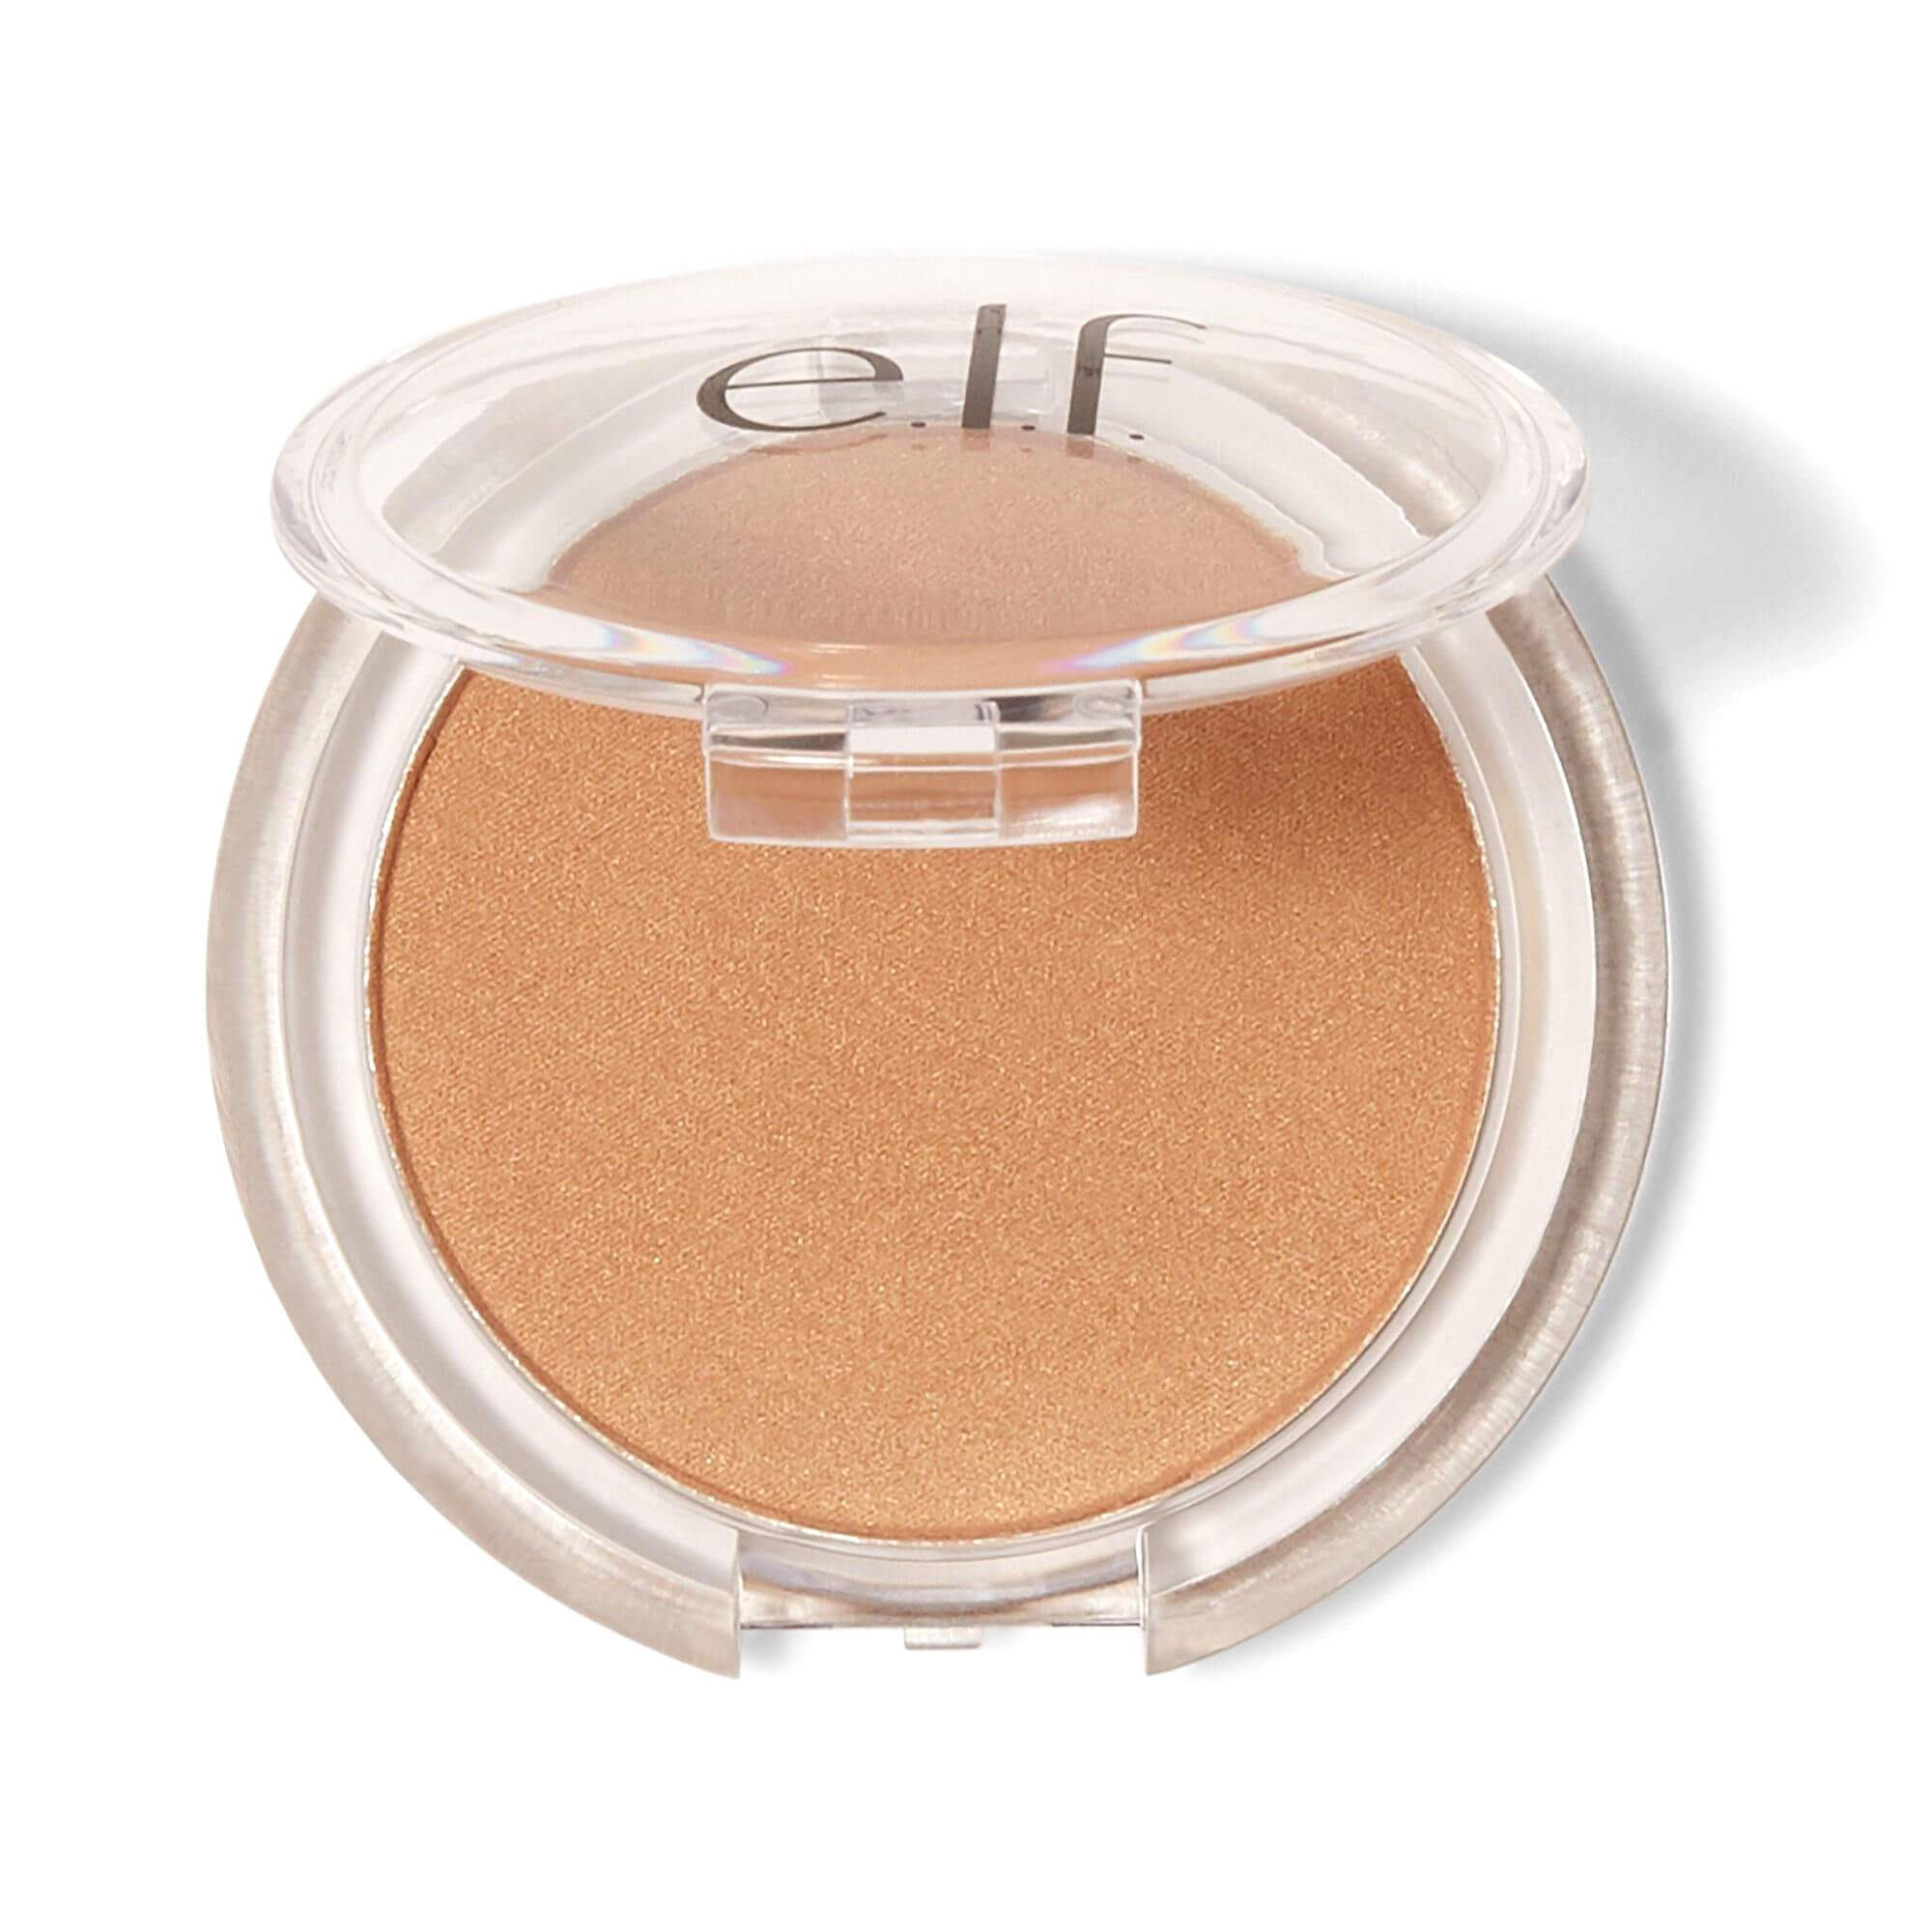 ELF bronzer sunkissed